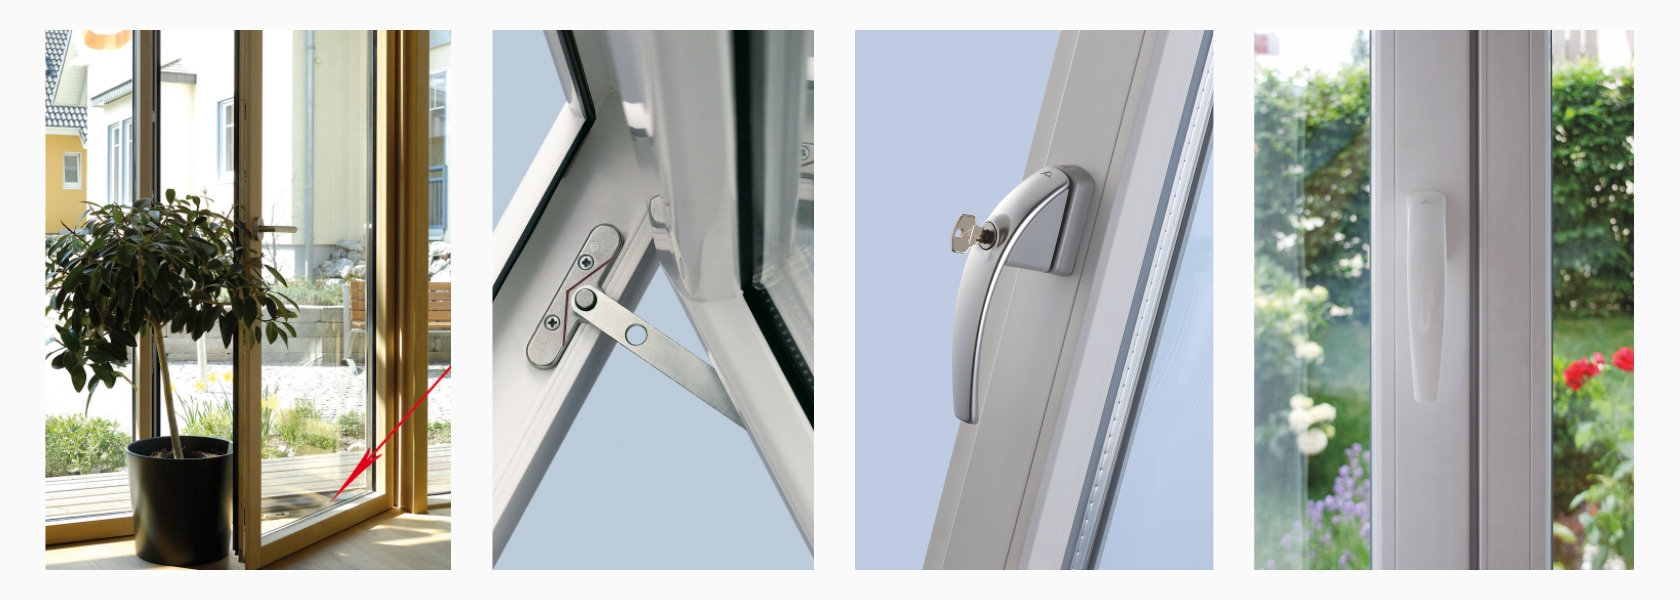 window pvc-u hardware parts